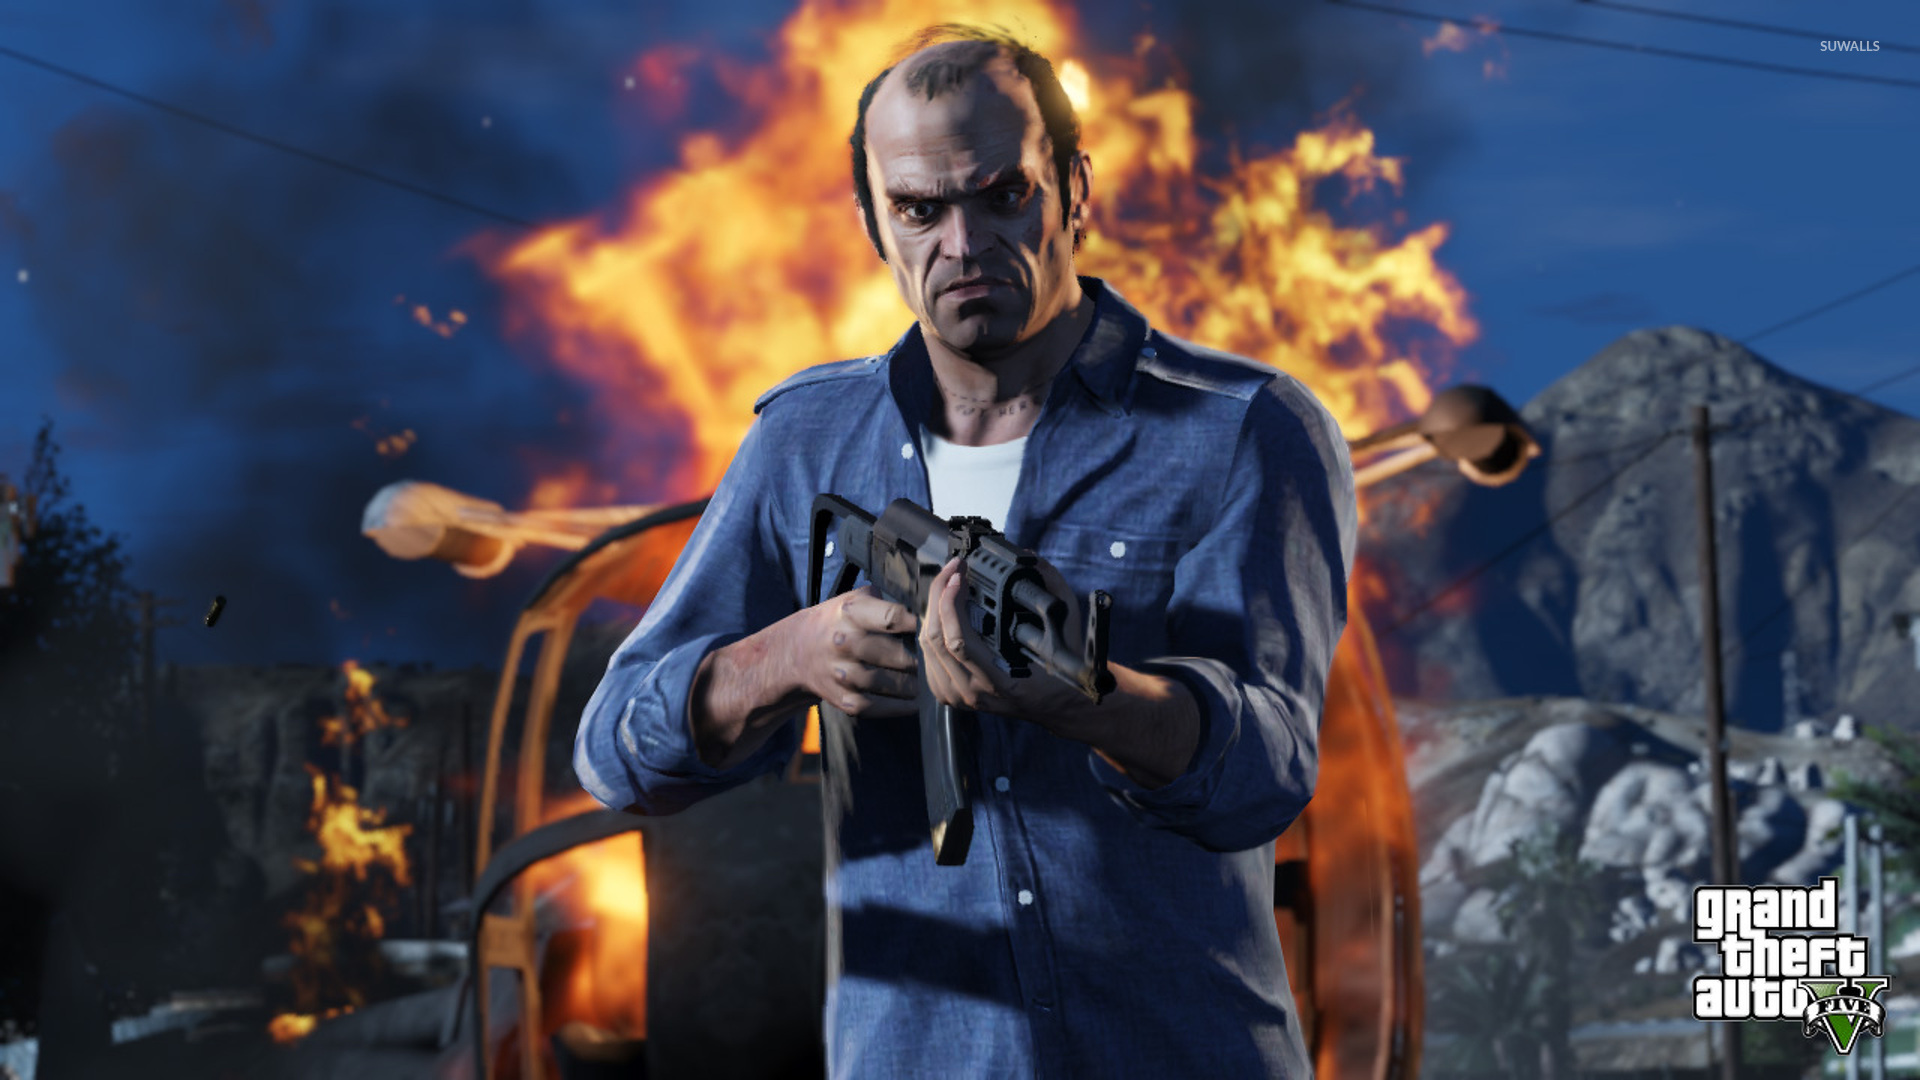 Trevor Grand Theft Auto V 2 Wallpaper Game Wallpapers